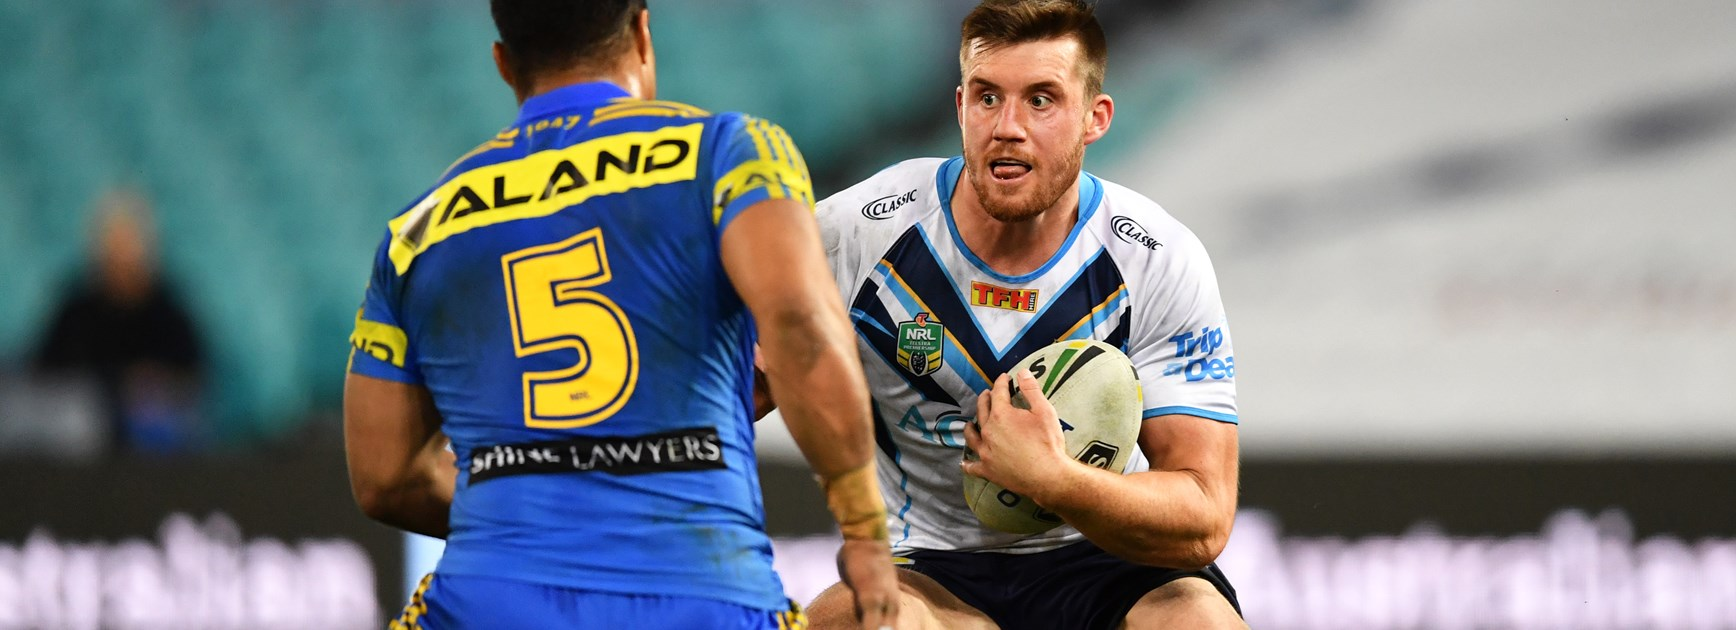 Gold Coast Titans forward Joe Greenwood to follow in James Graham's footsteps